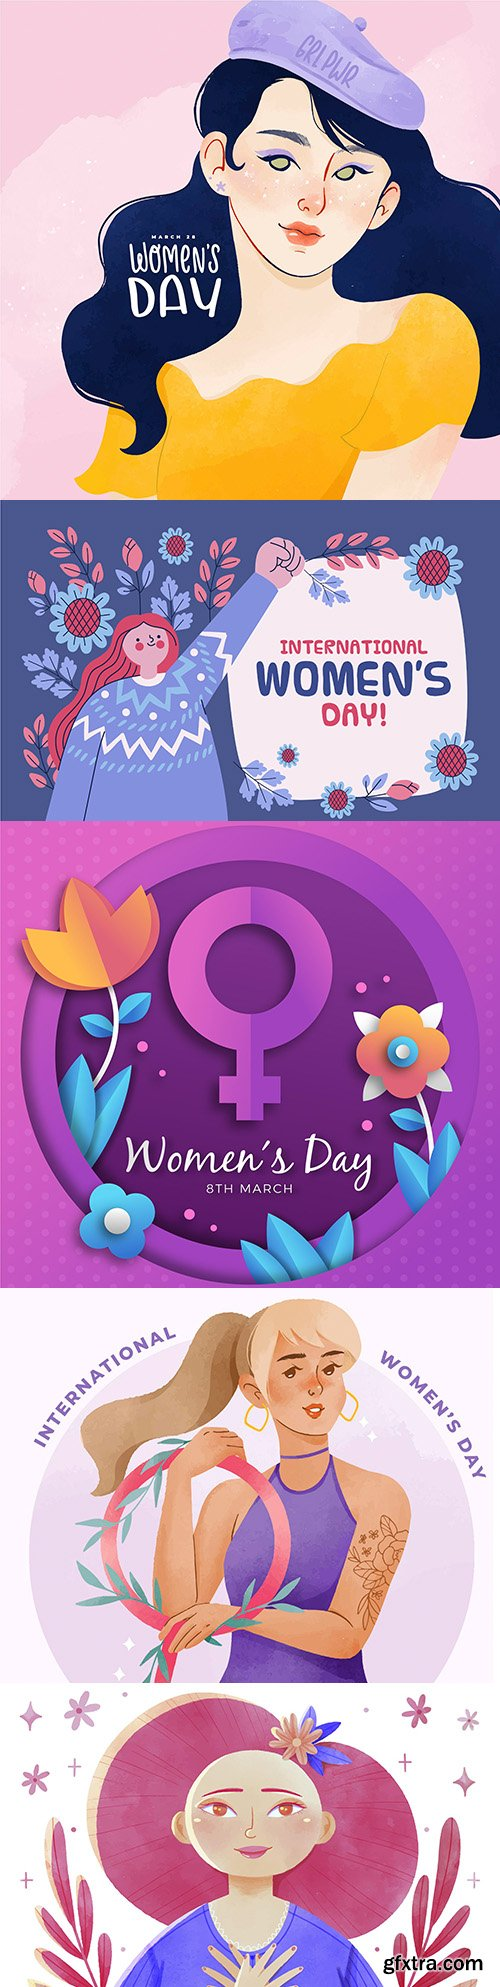 Happy Women's Day March 8 watercolor illustration 3